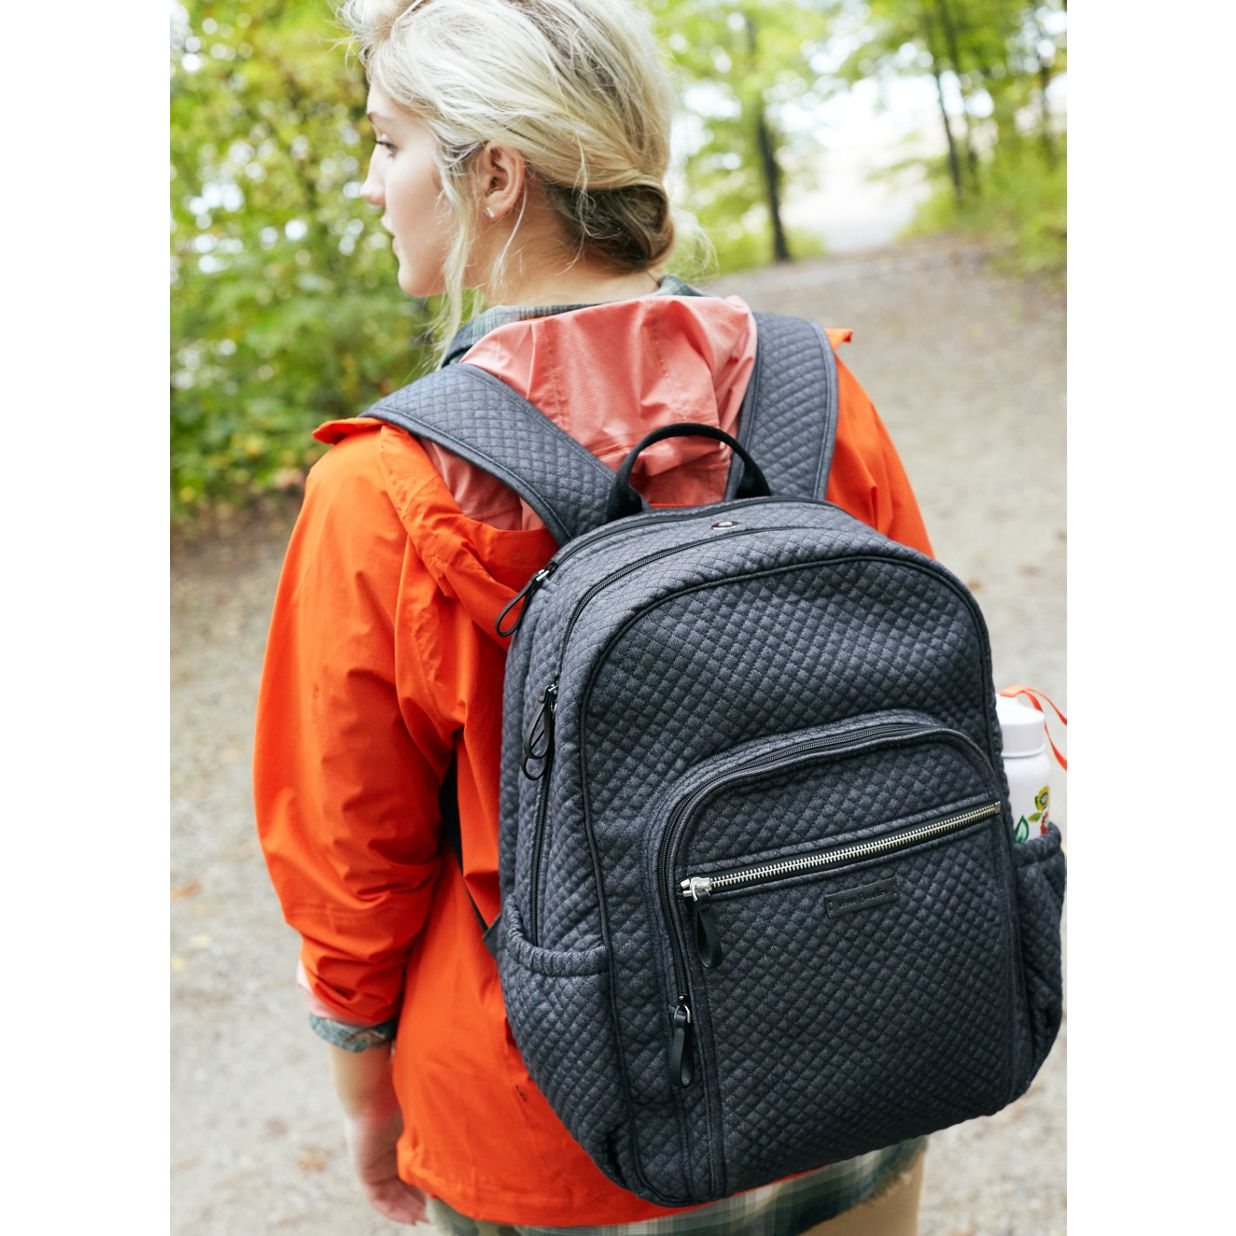 514e83d647f9 ... Image of Iconic Campus Backpack in Denim Navy